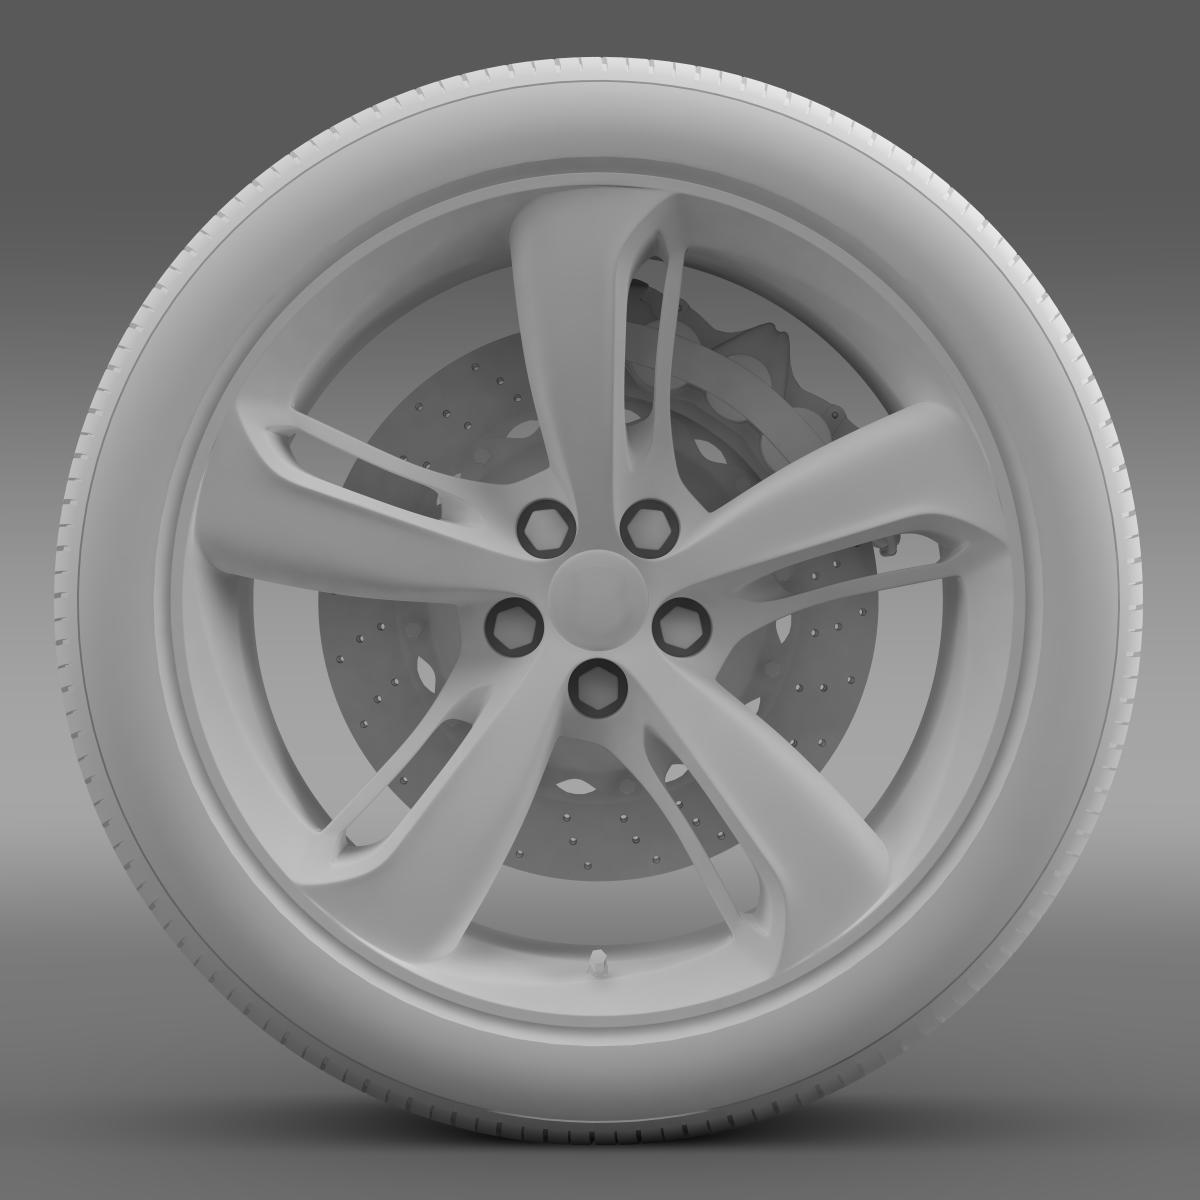 bentley continental gt speed 2015 wheel 3d model 3ds max fbx c4d lwo ma mb hrc xsi obj 210586